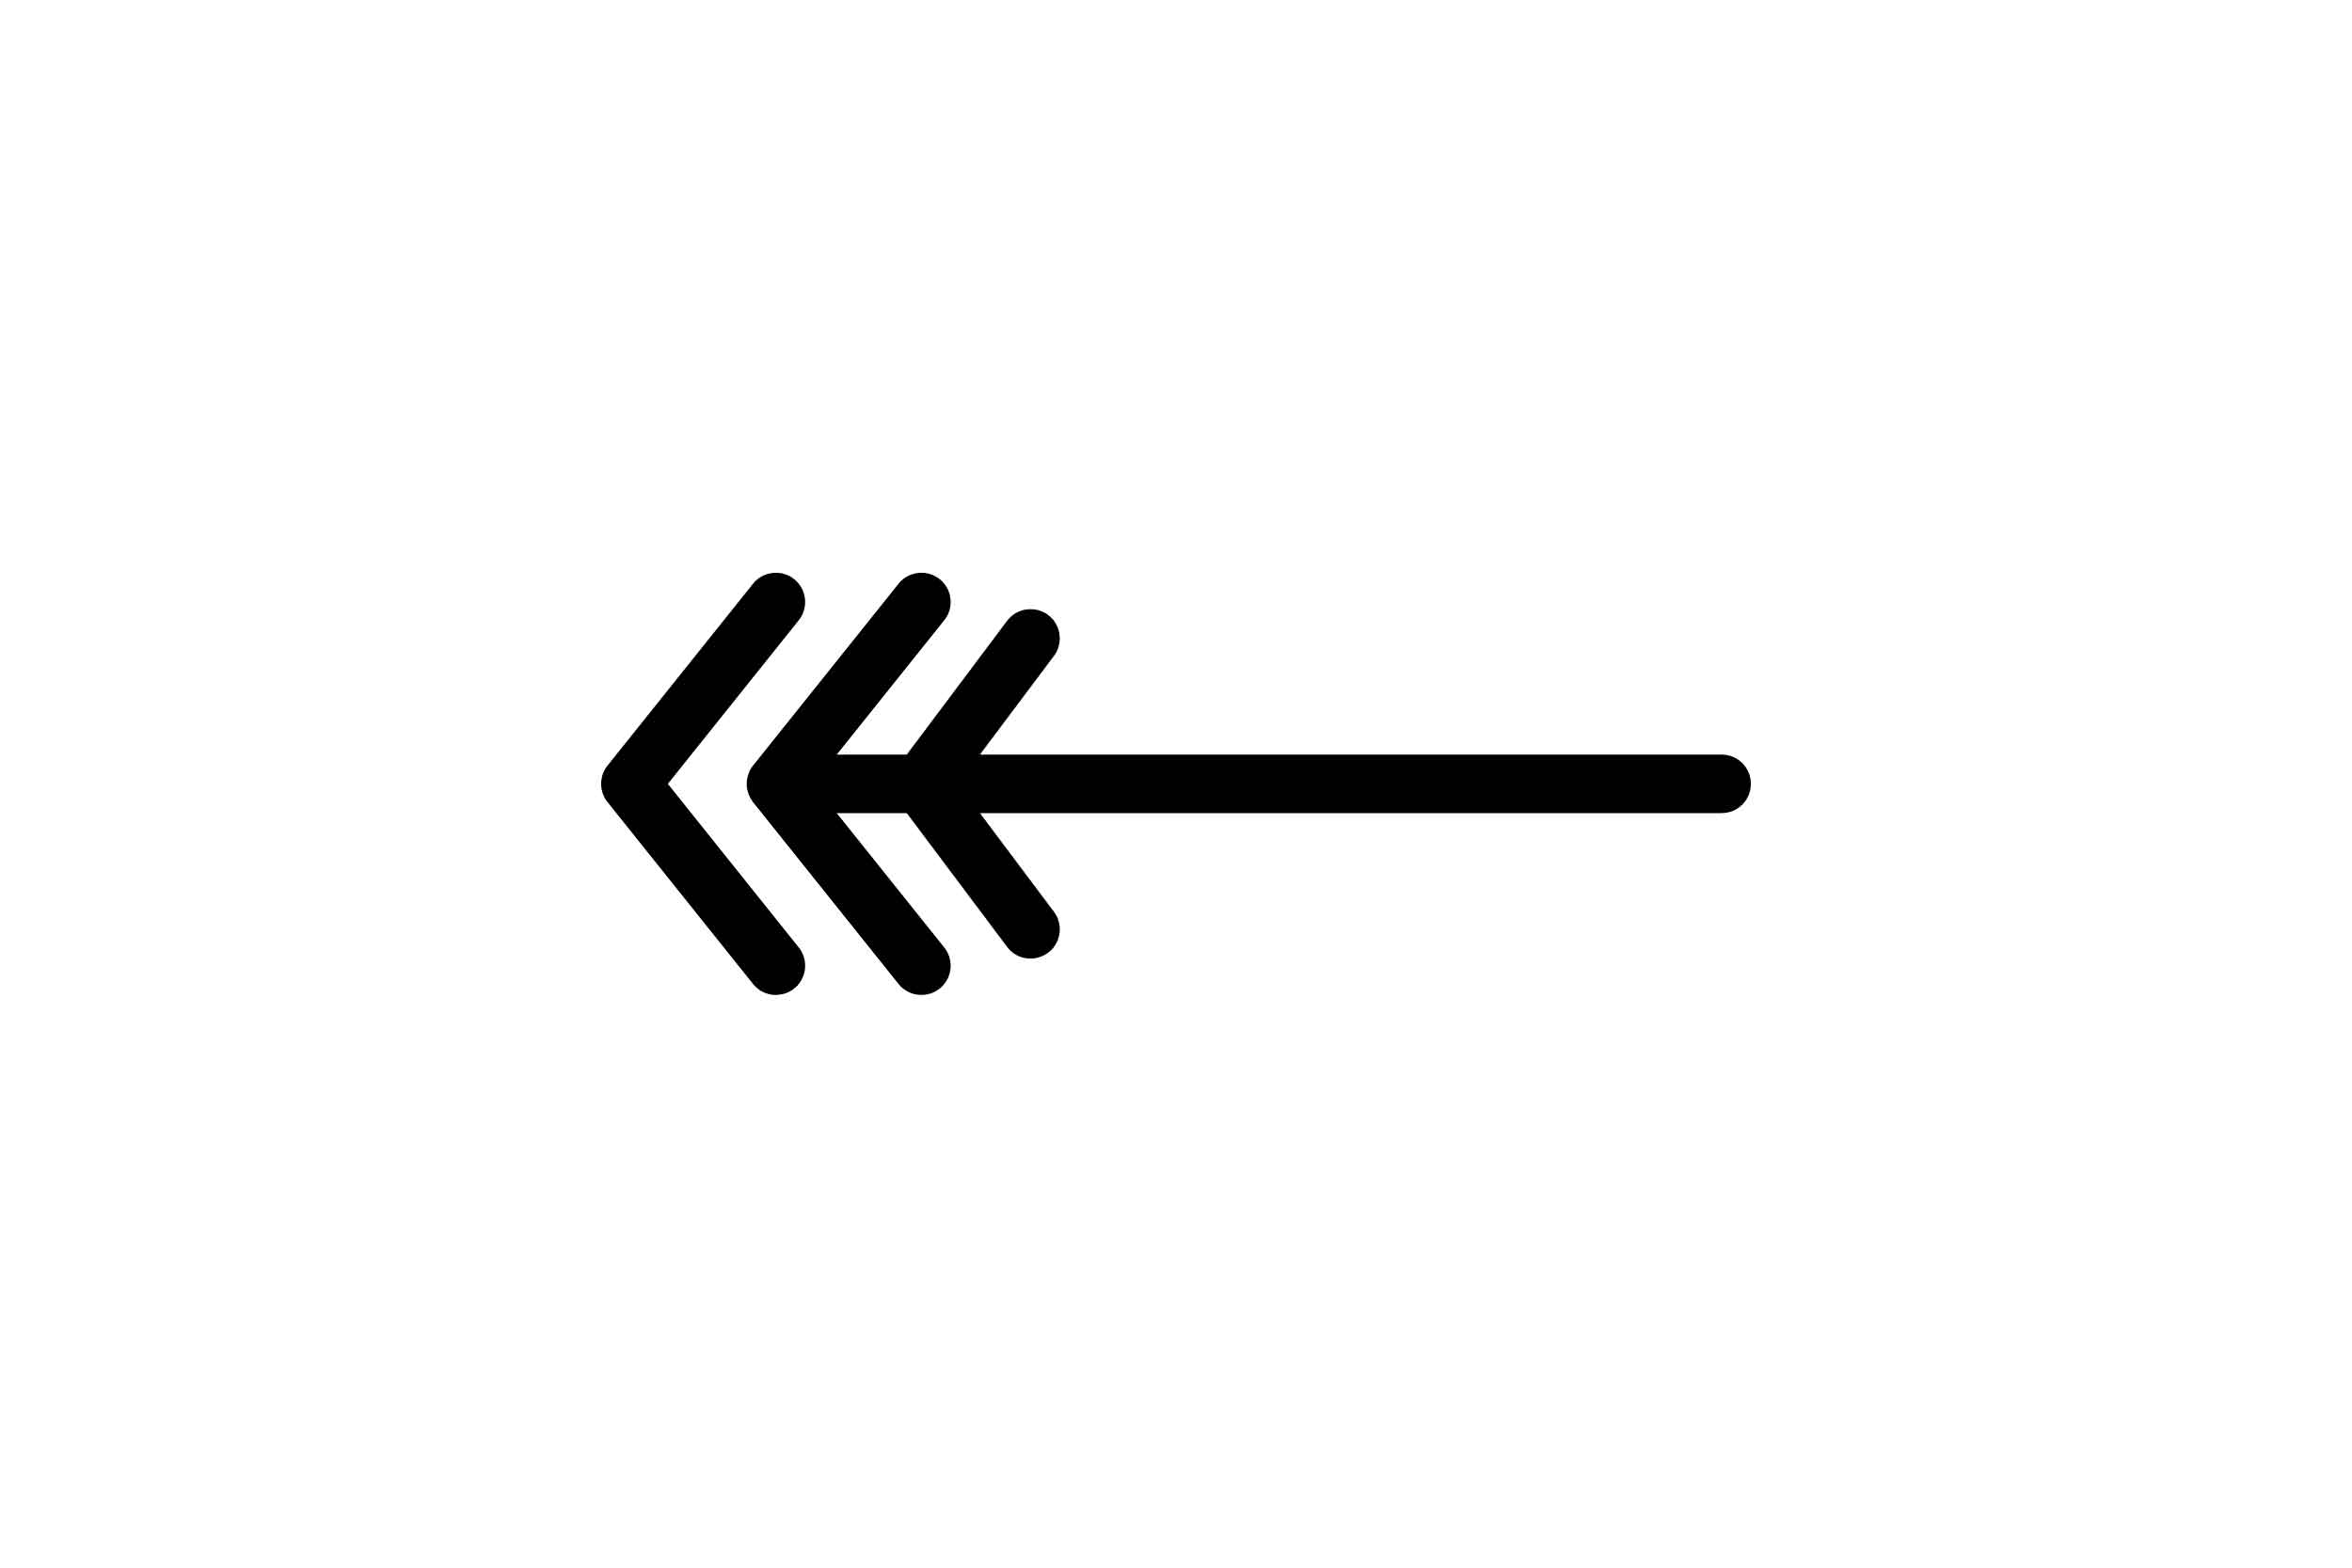 Download Free Reply Black And White Line Icon Graphic By Glyph Faisalovers for Cricut Explore, Silhouette and other cutting machines.